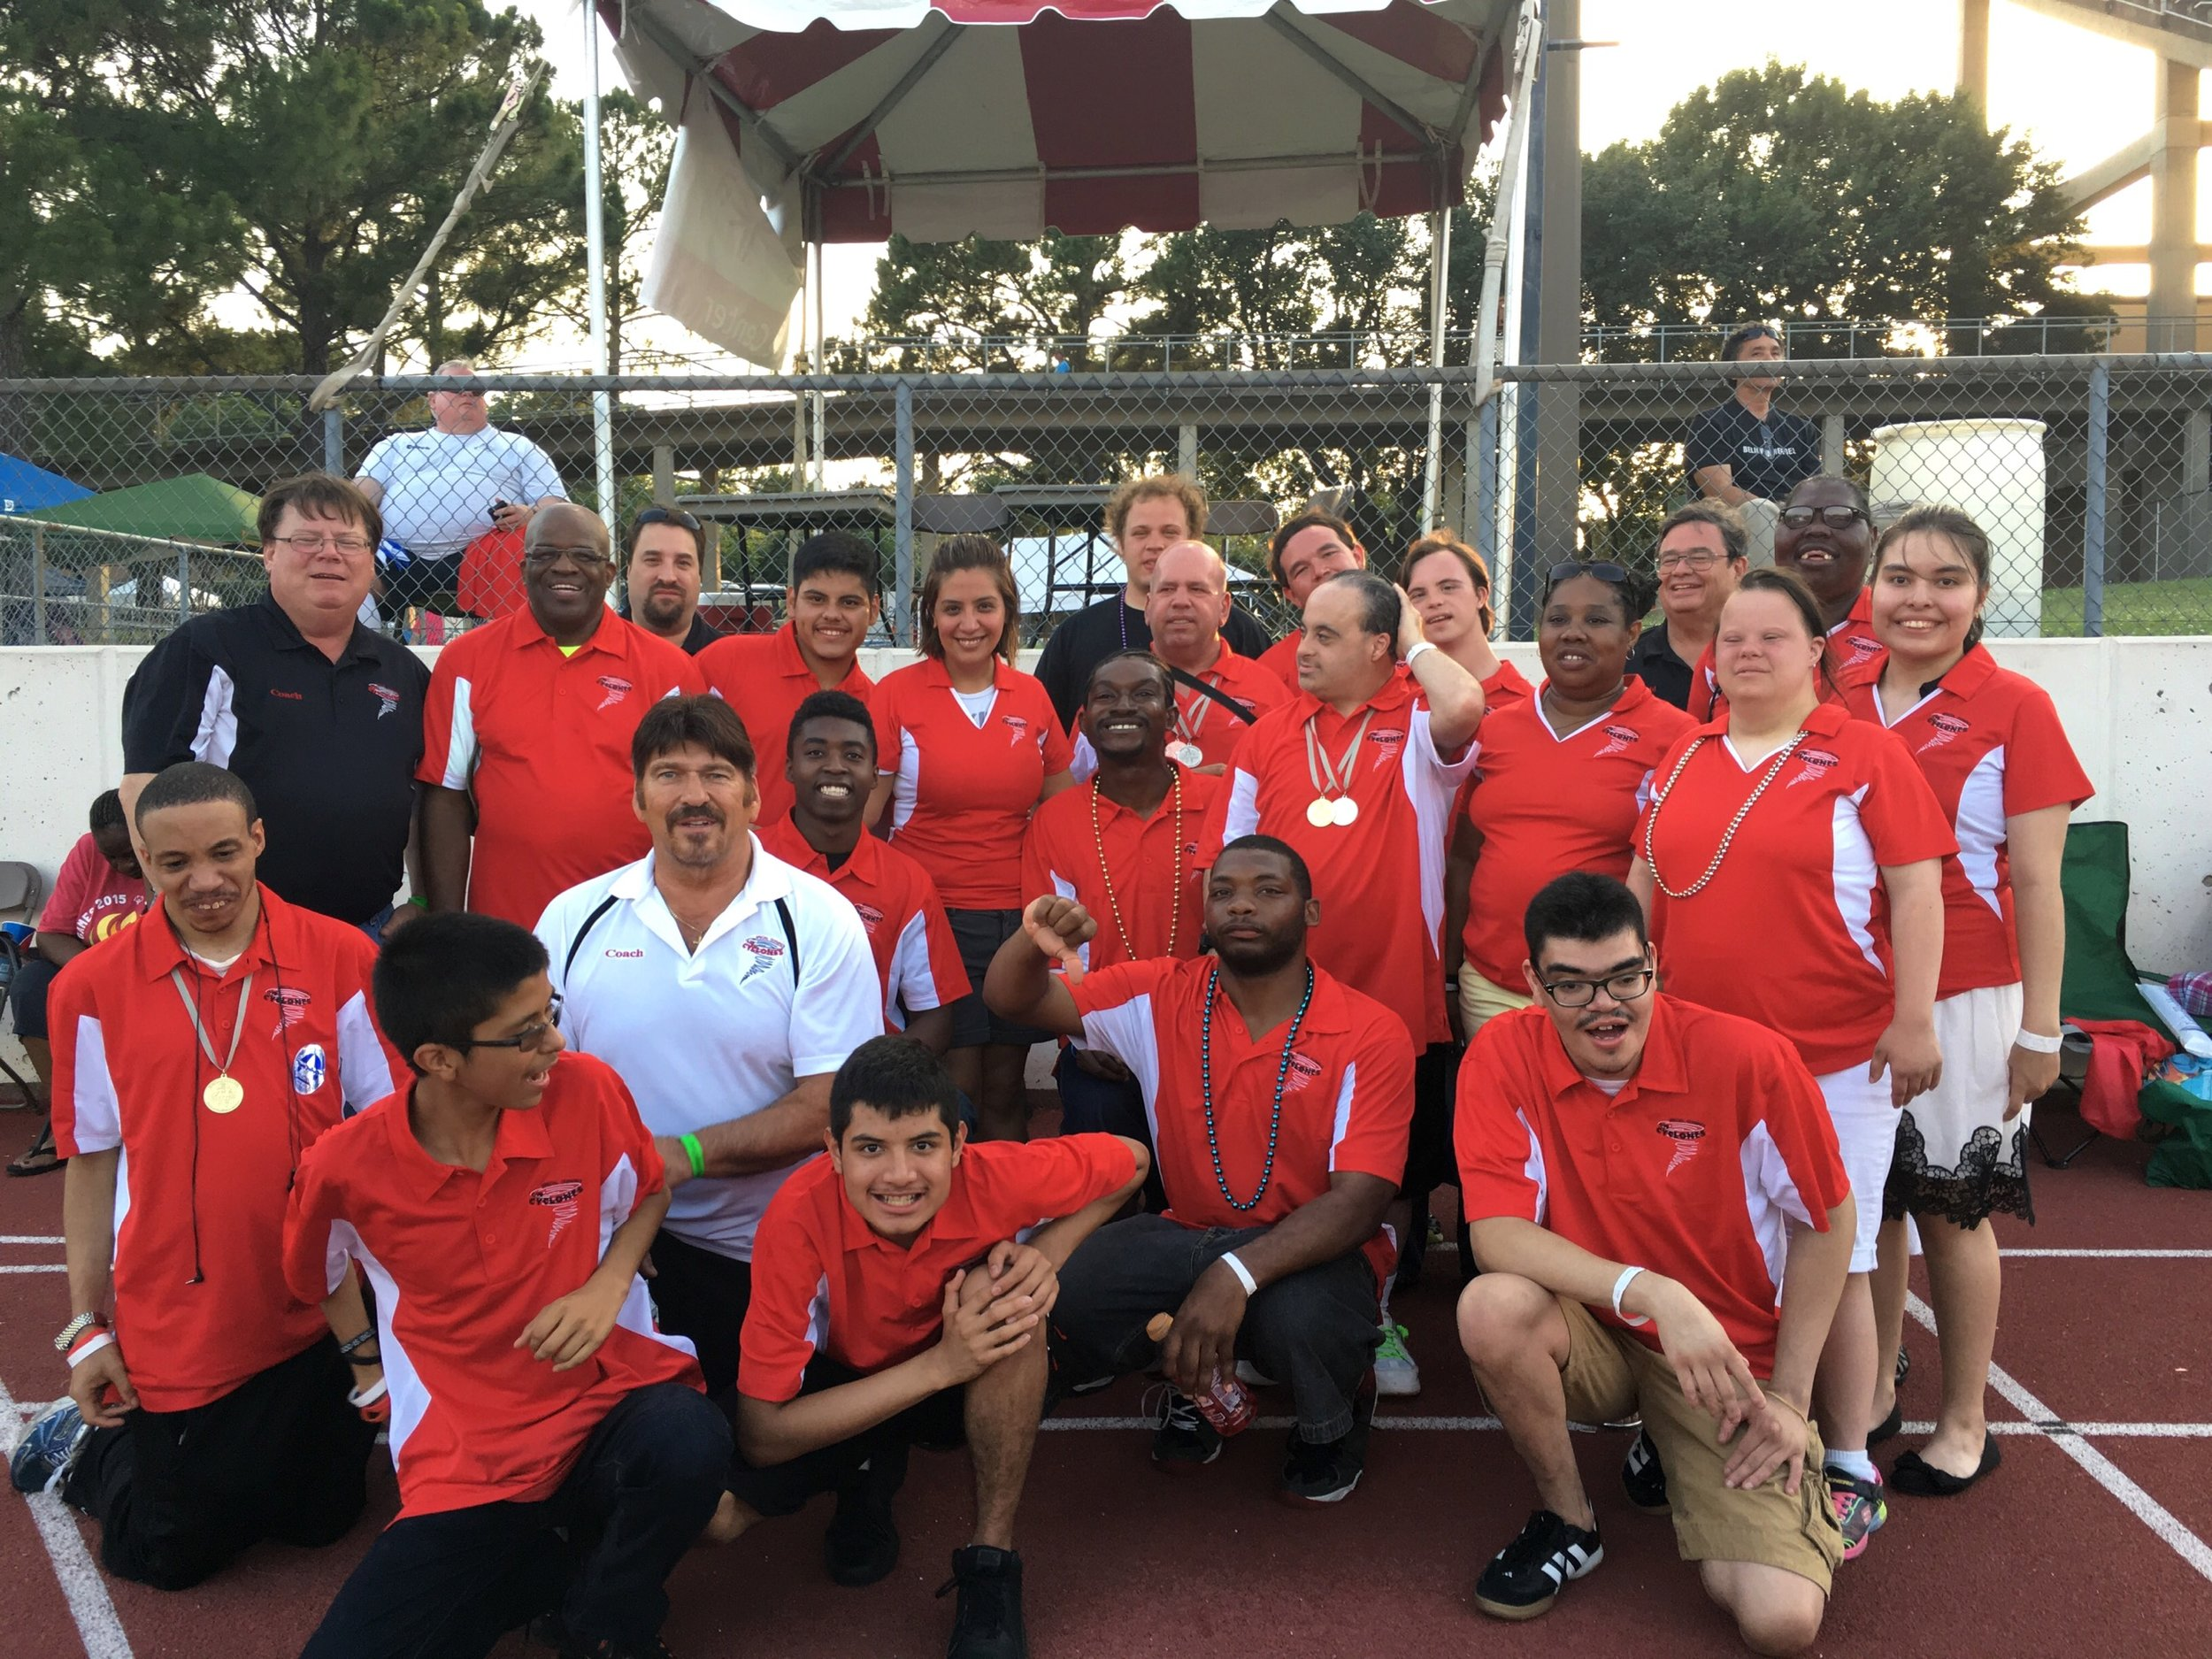 Special Olympics Texas Summer Games back in 2015. I bought the team new jerseys because fundraising is the most important part of keeping this team going.